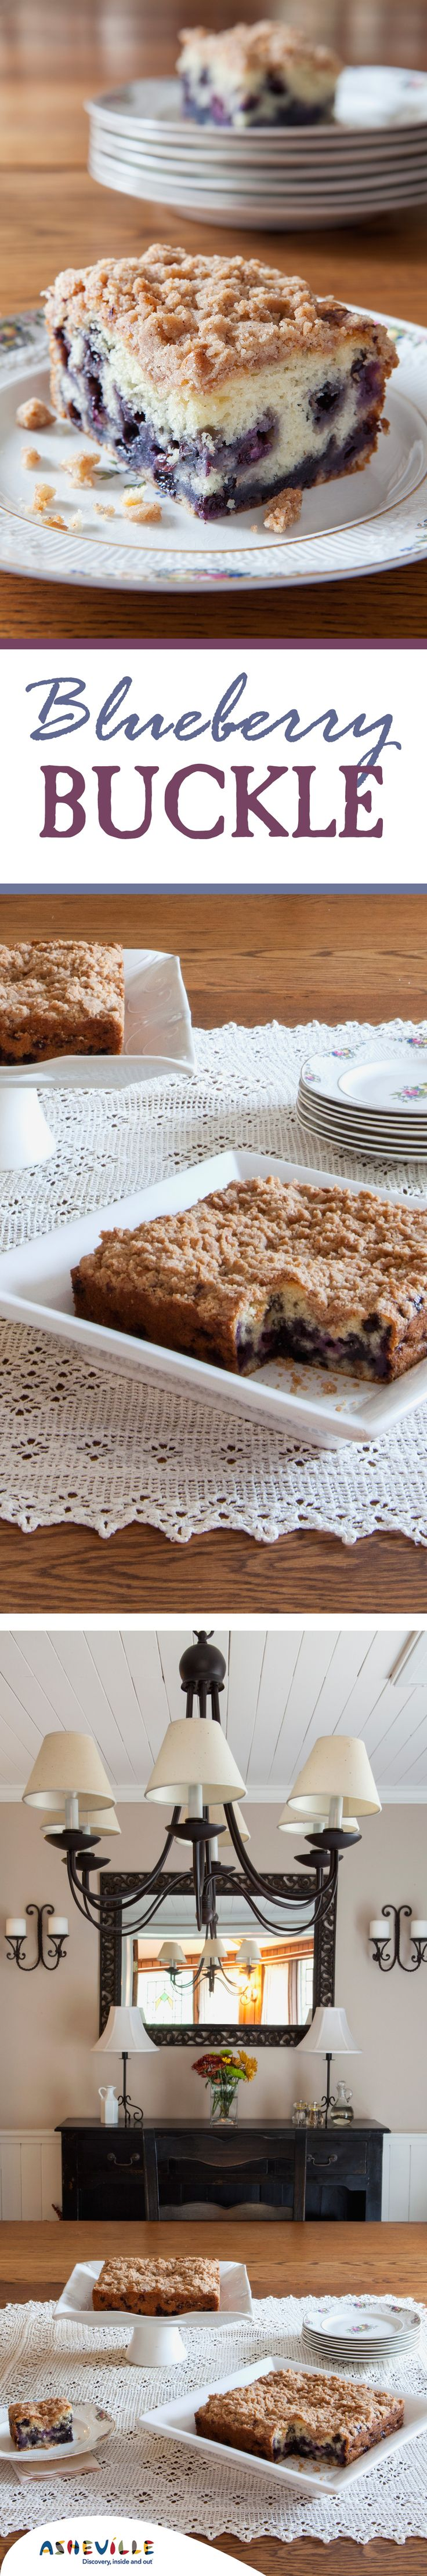 Blueberry Buckle Recipe. This fresh blueberry cake is great for both breakfast and dessert and has a crumbly streusel topping.